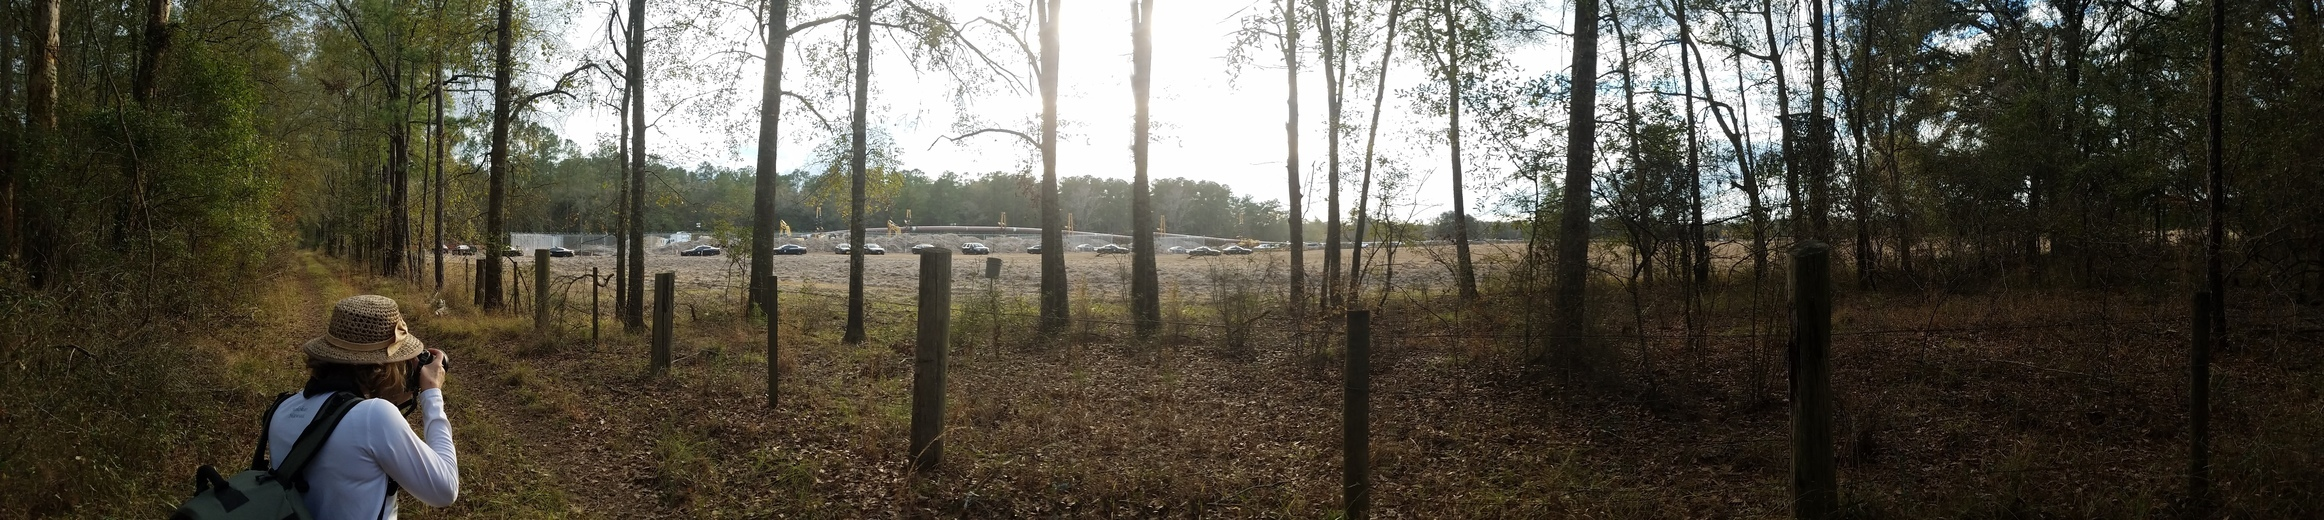 2324x520 Panorama, Sabal Trail pipe going into ground, Hamilton County, 30.4113889, -83.1652778, in Suwannee River Outing and Protest, by John S. Quarterman, for WWALS.net, 14 January 2017